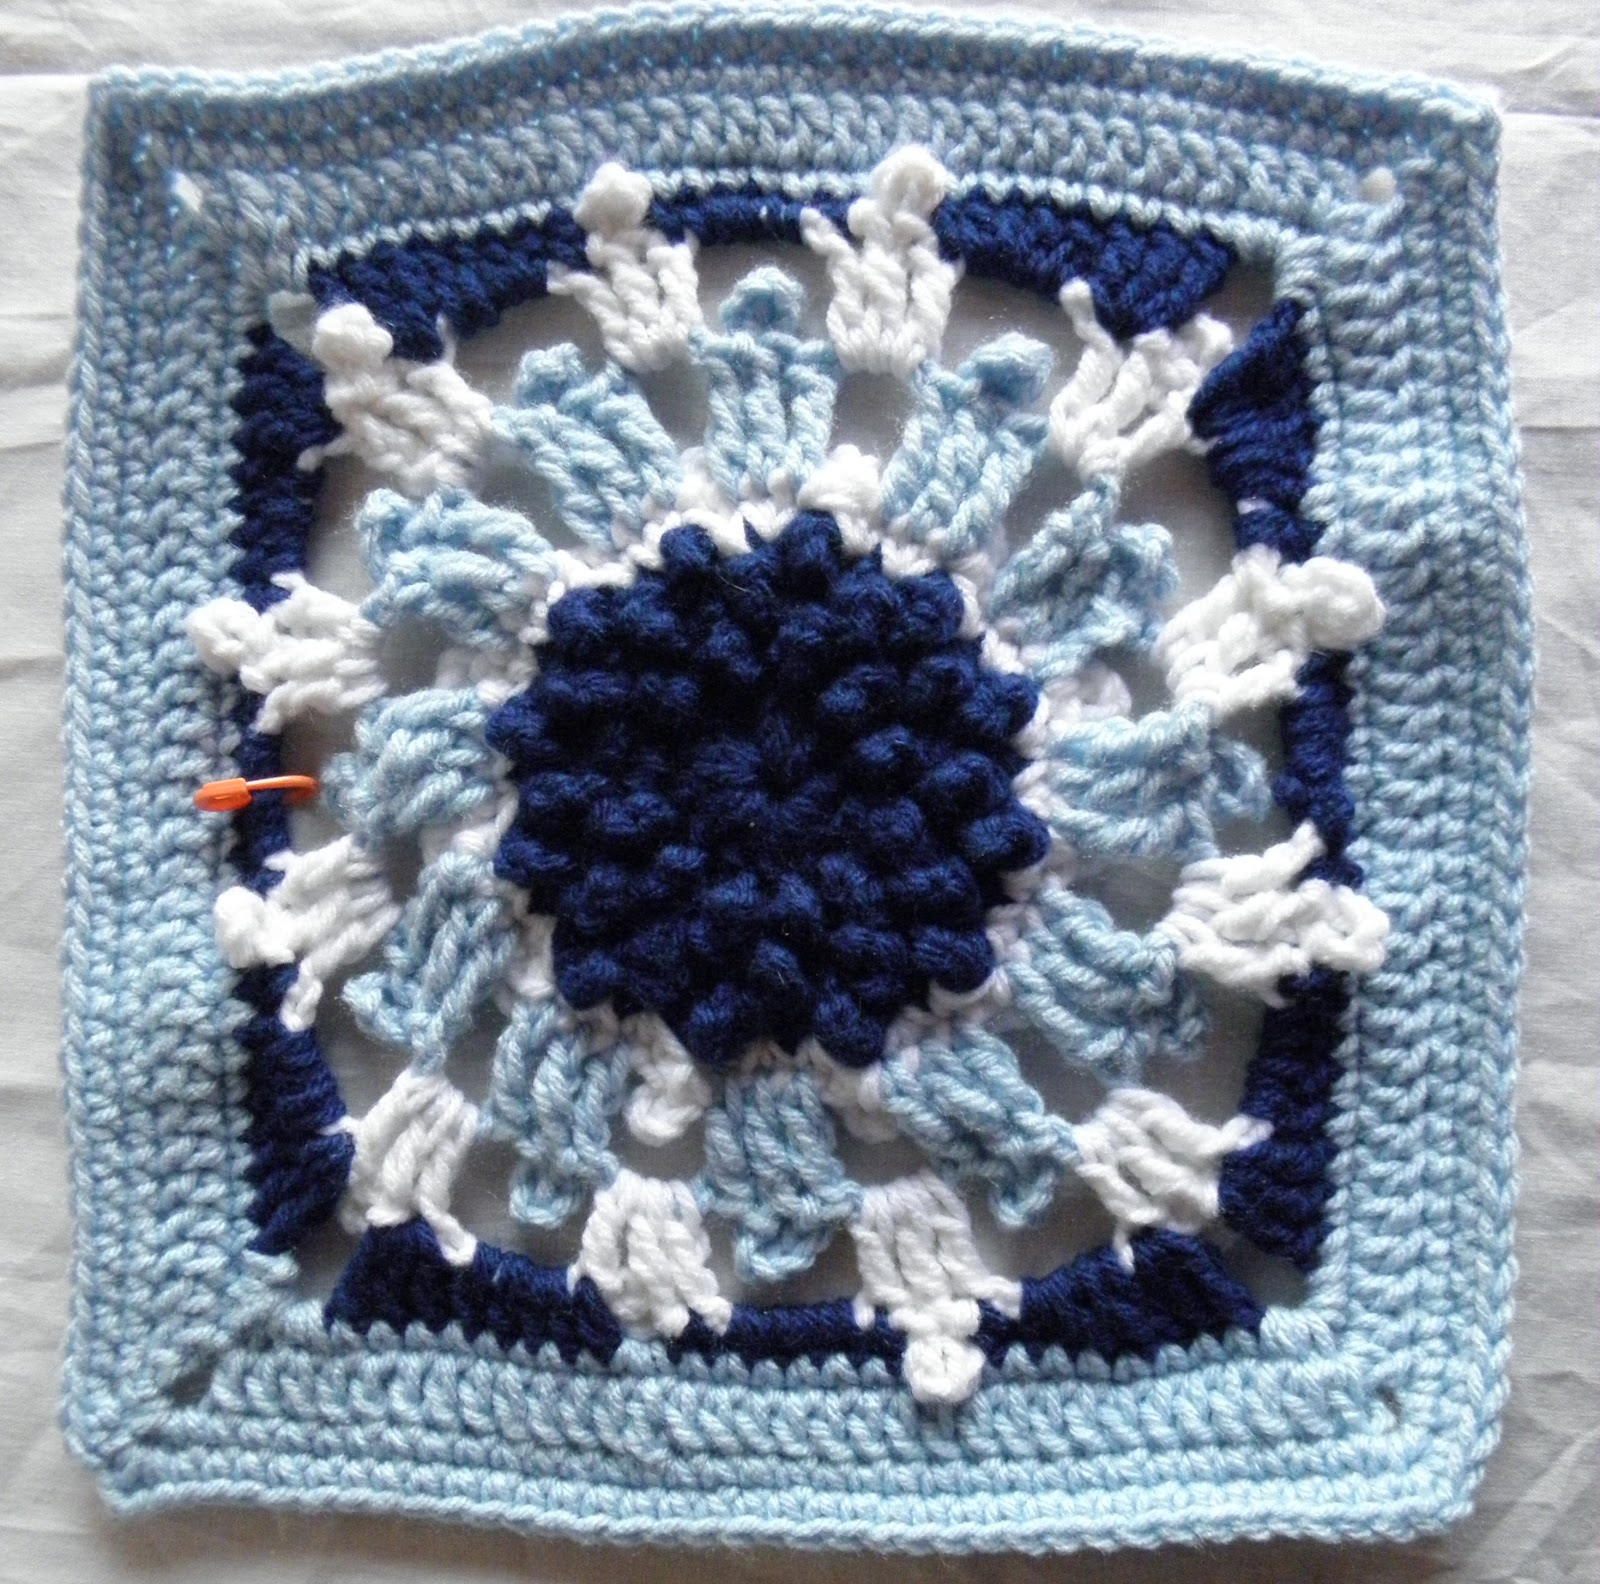 f1bercat\'s SlowKnitter: FO Friday with Crocodile Flowers